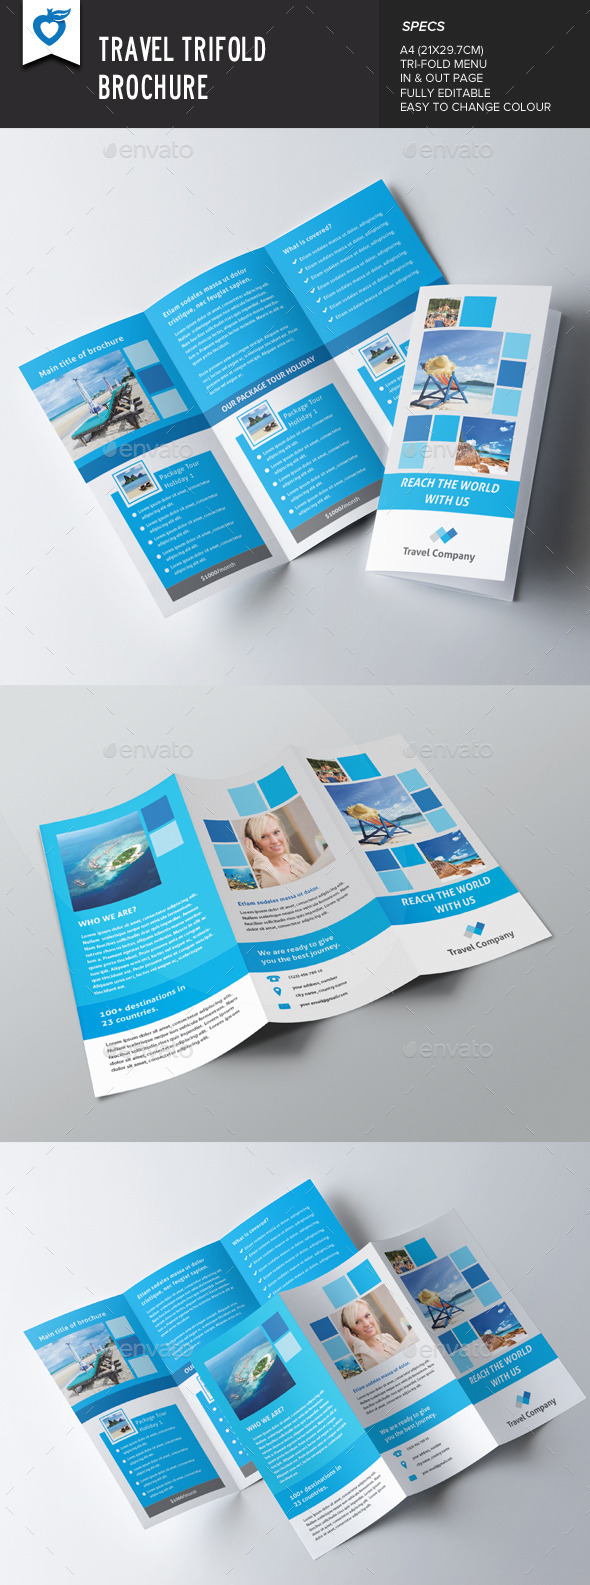 GraphicRiver Travel Trifold Brochure 8838025